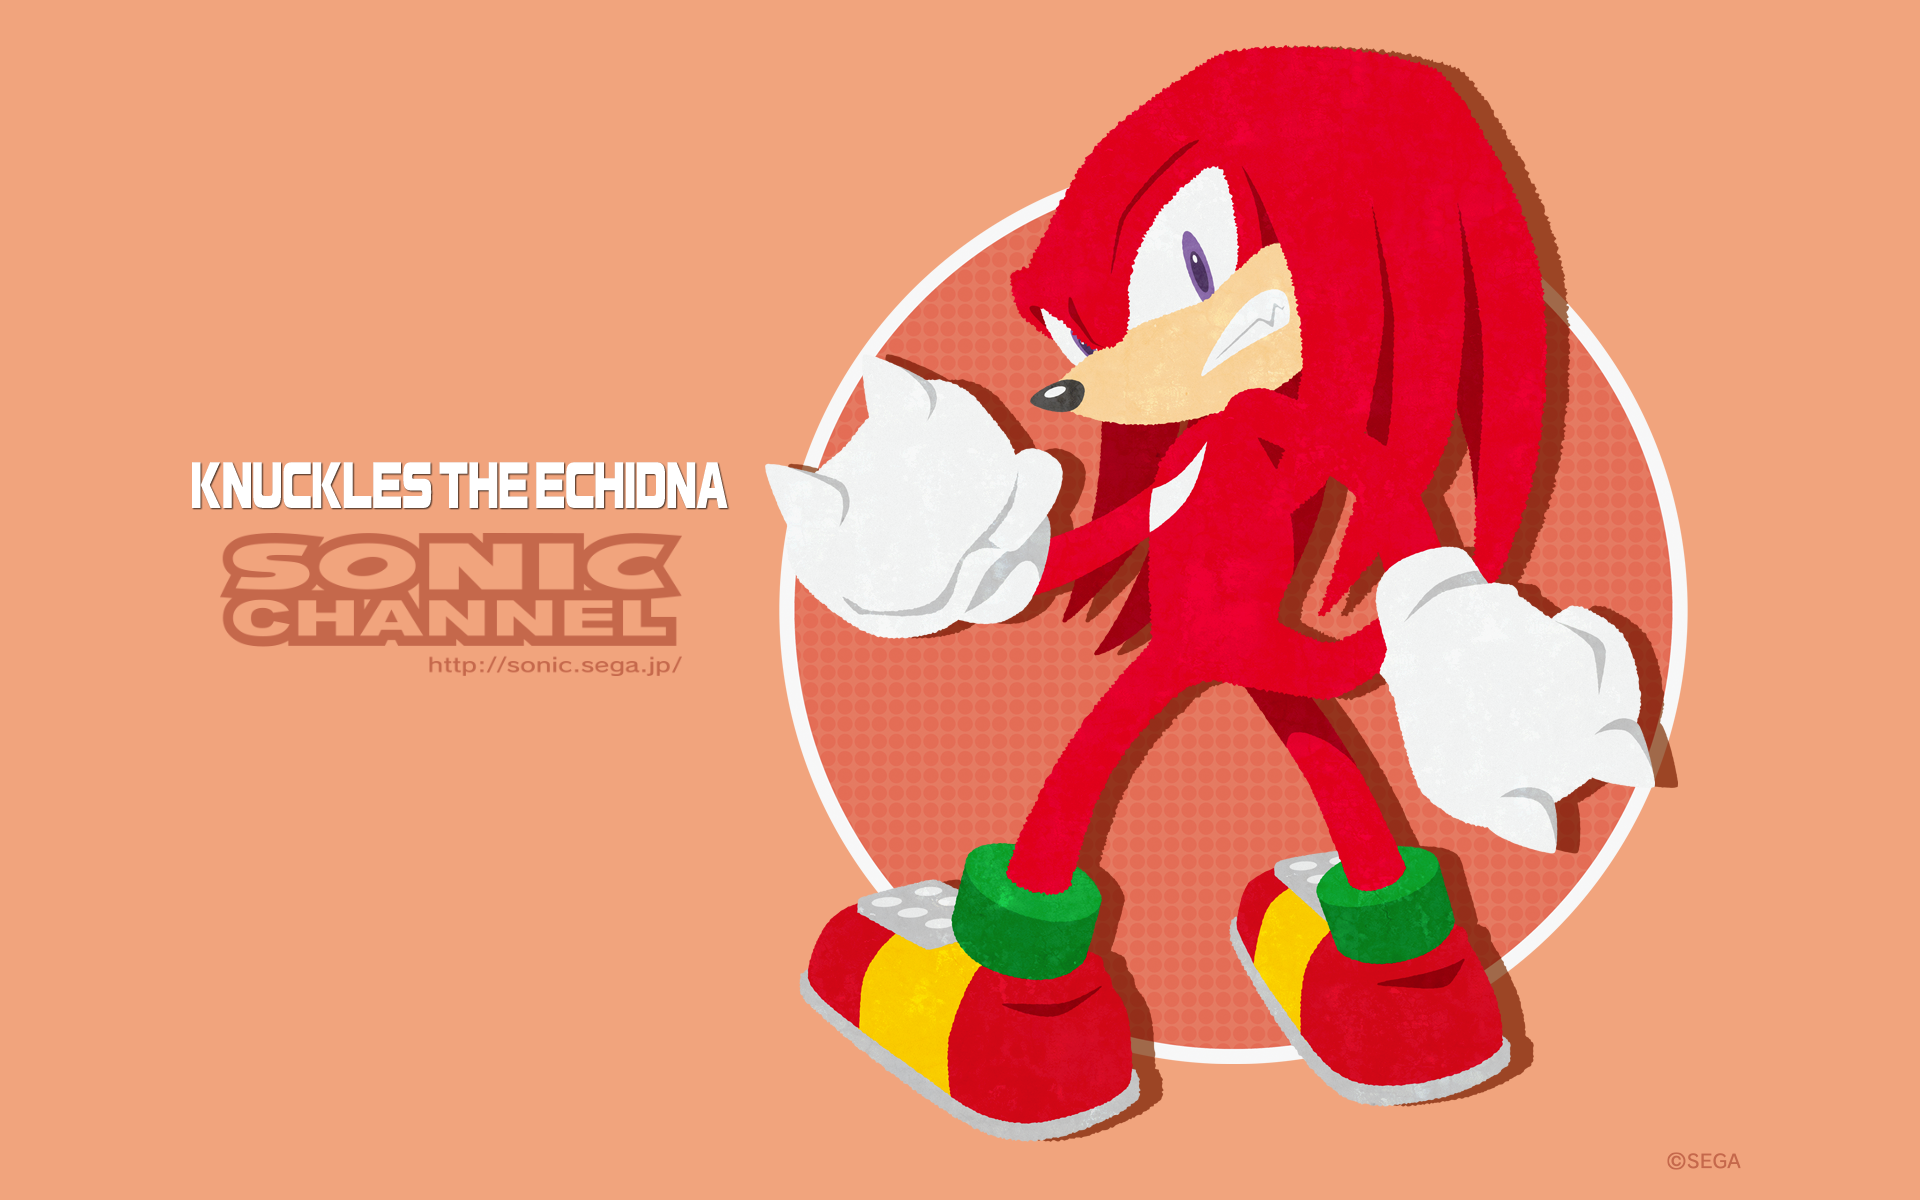 http://sonic.sega.jp/SonicChannel/enjoy/image/wallpaper_152_nuckles_12_pc.png